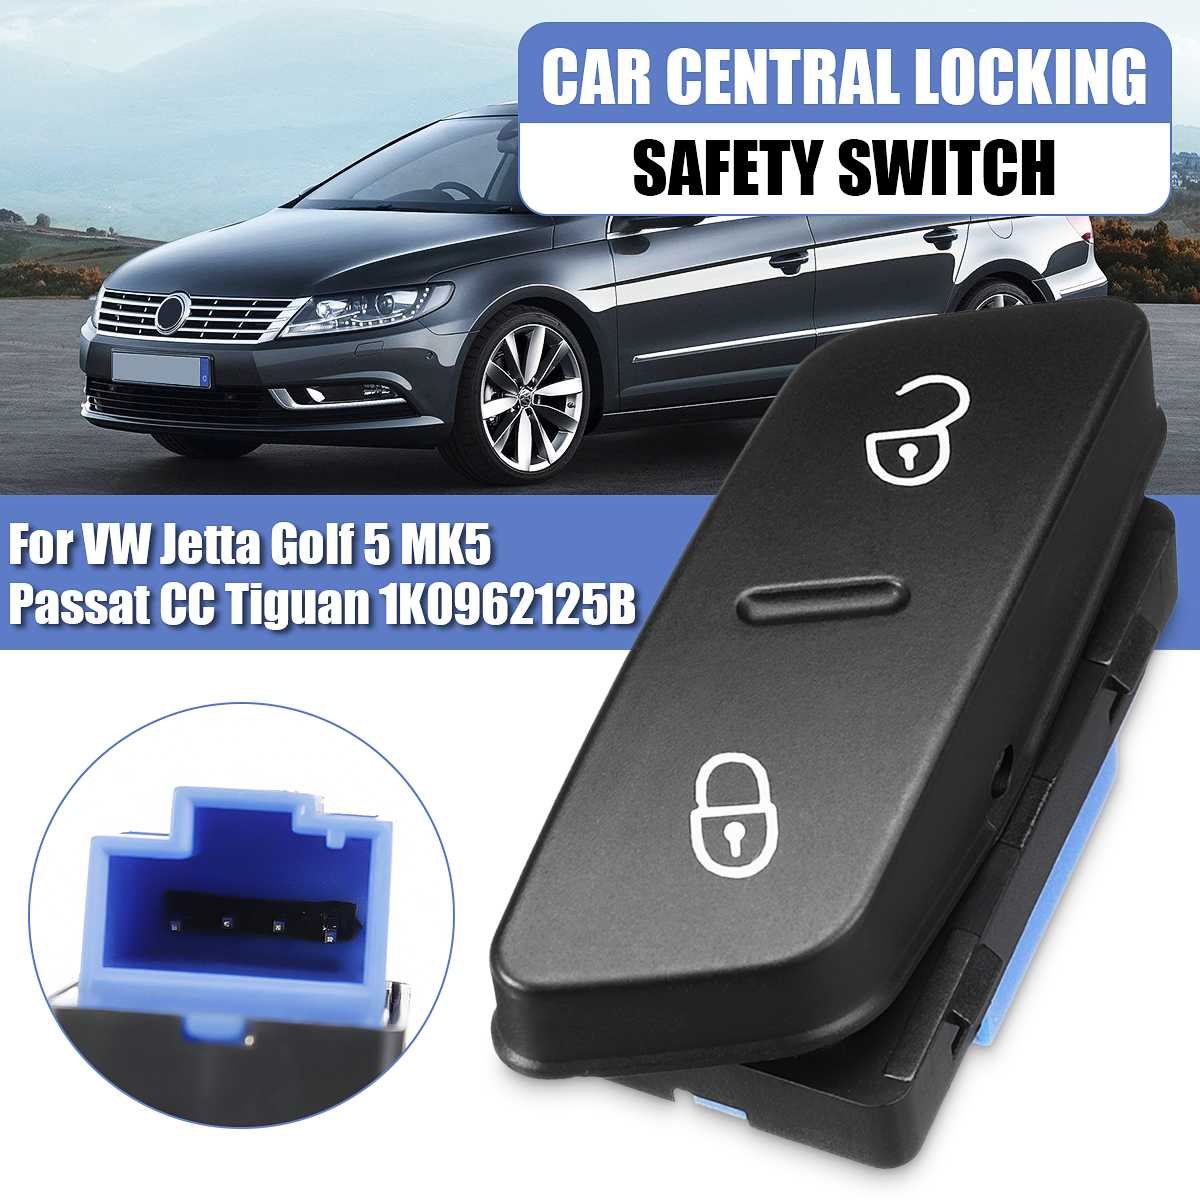 Car Central Locking Safety Switch Button Door Lock 1K0962125B For Volkswagen For VW Jetta Golf 5 MK5 Passat CC <font><b>Tiguan</b></font> 2005 -2014 image